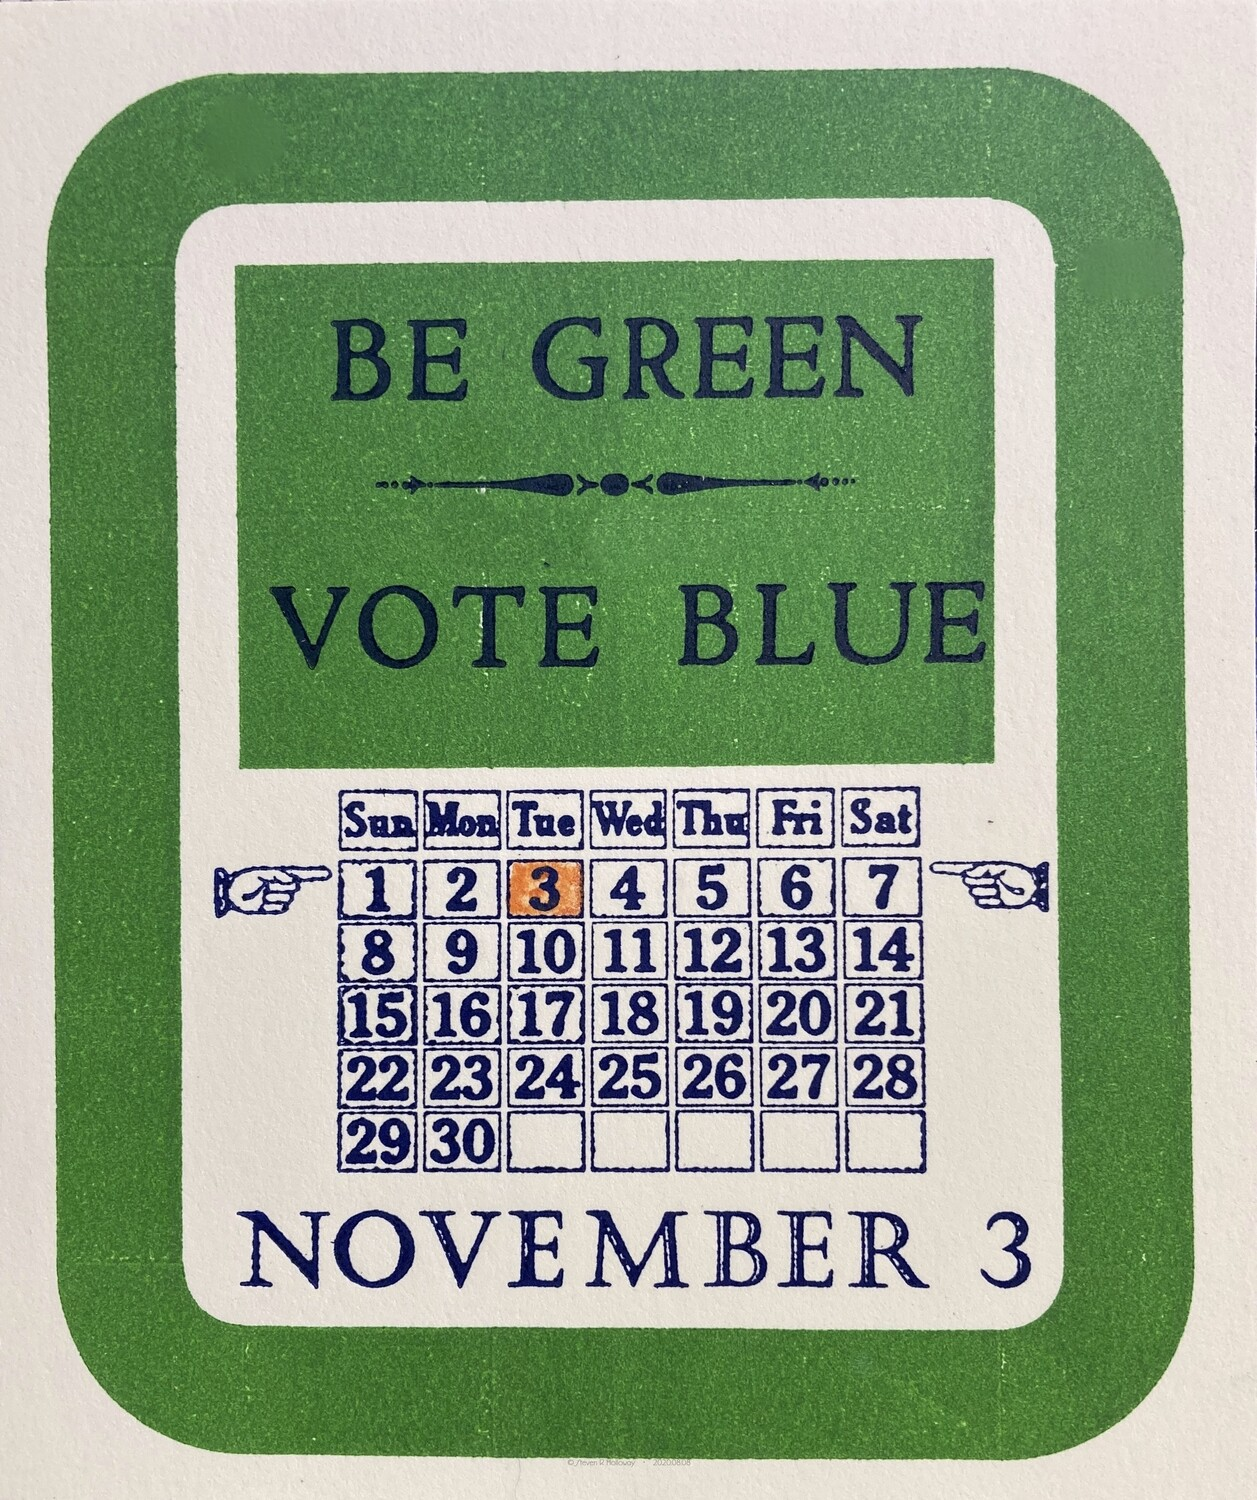 BE GREEN VOTE BLUE